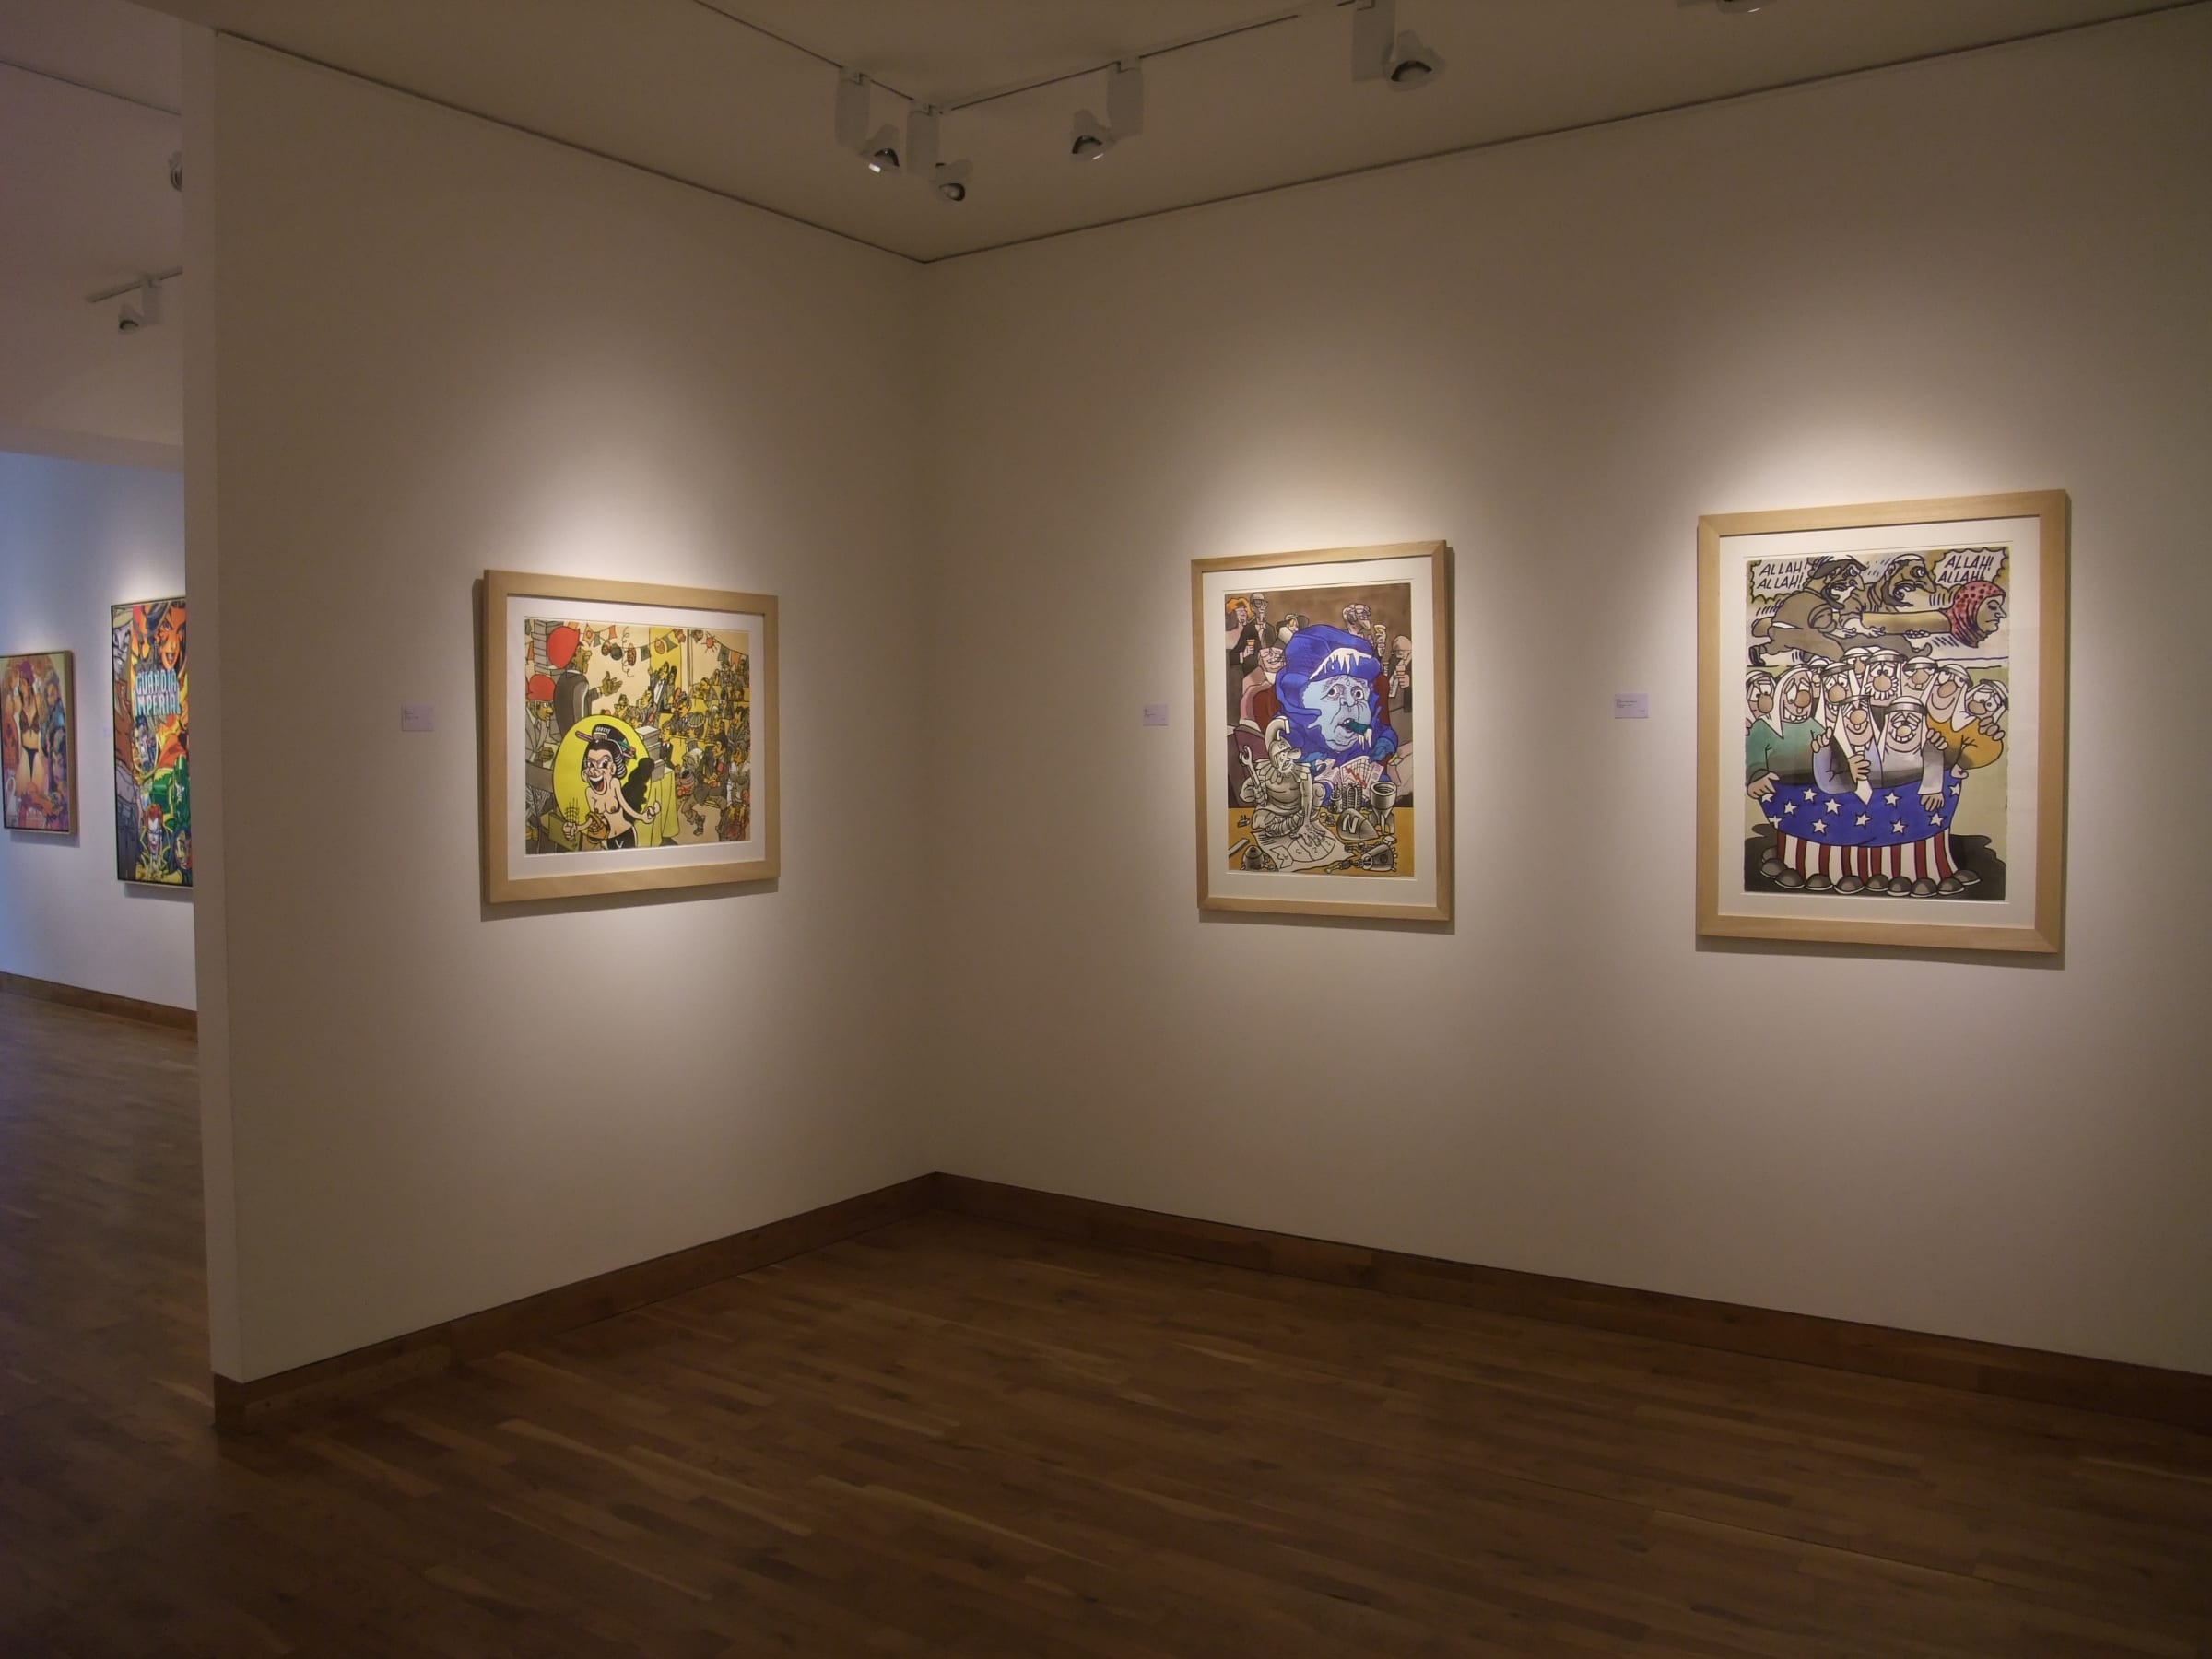 "<span class=""link fancybox-details-link""><a href=""/exhibitions/96/works/image_standalone326/"">View Detail Page</a></span><p>ERRÓ 